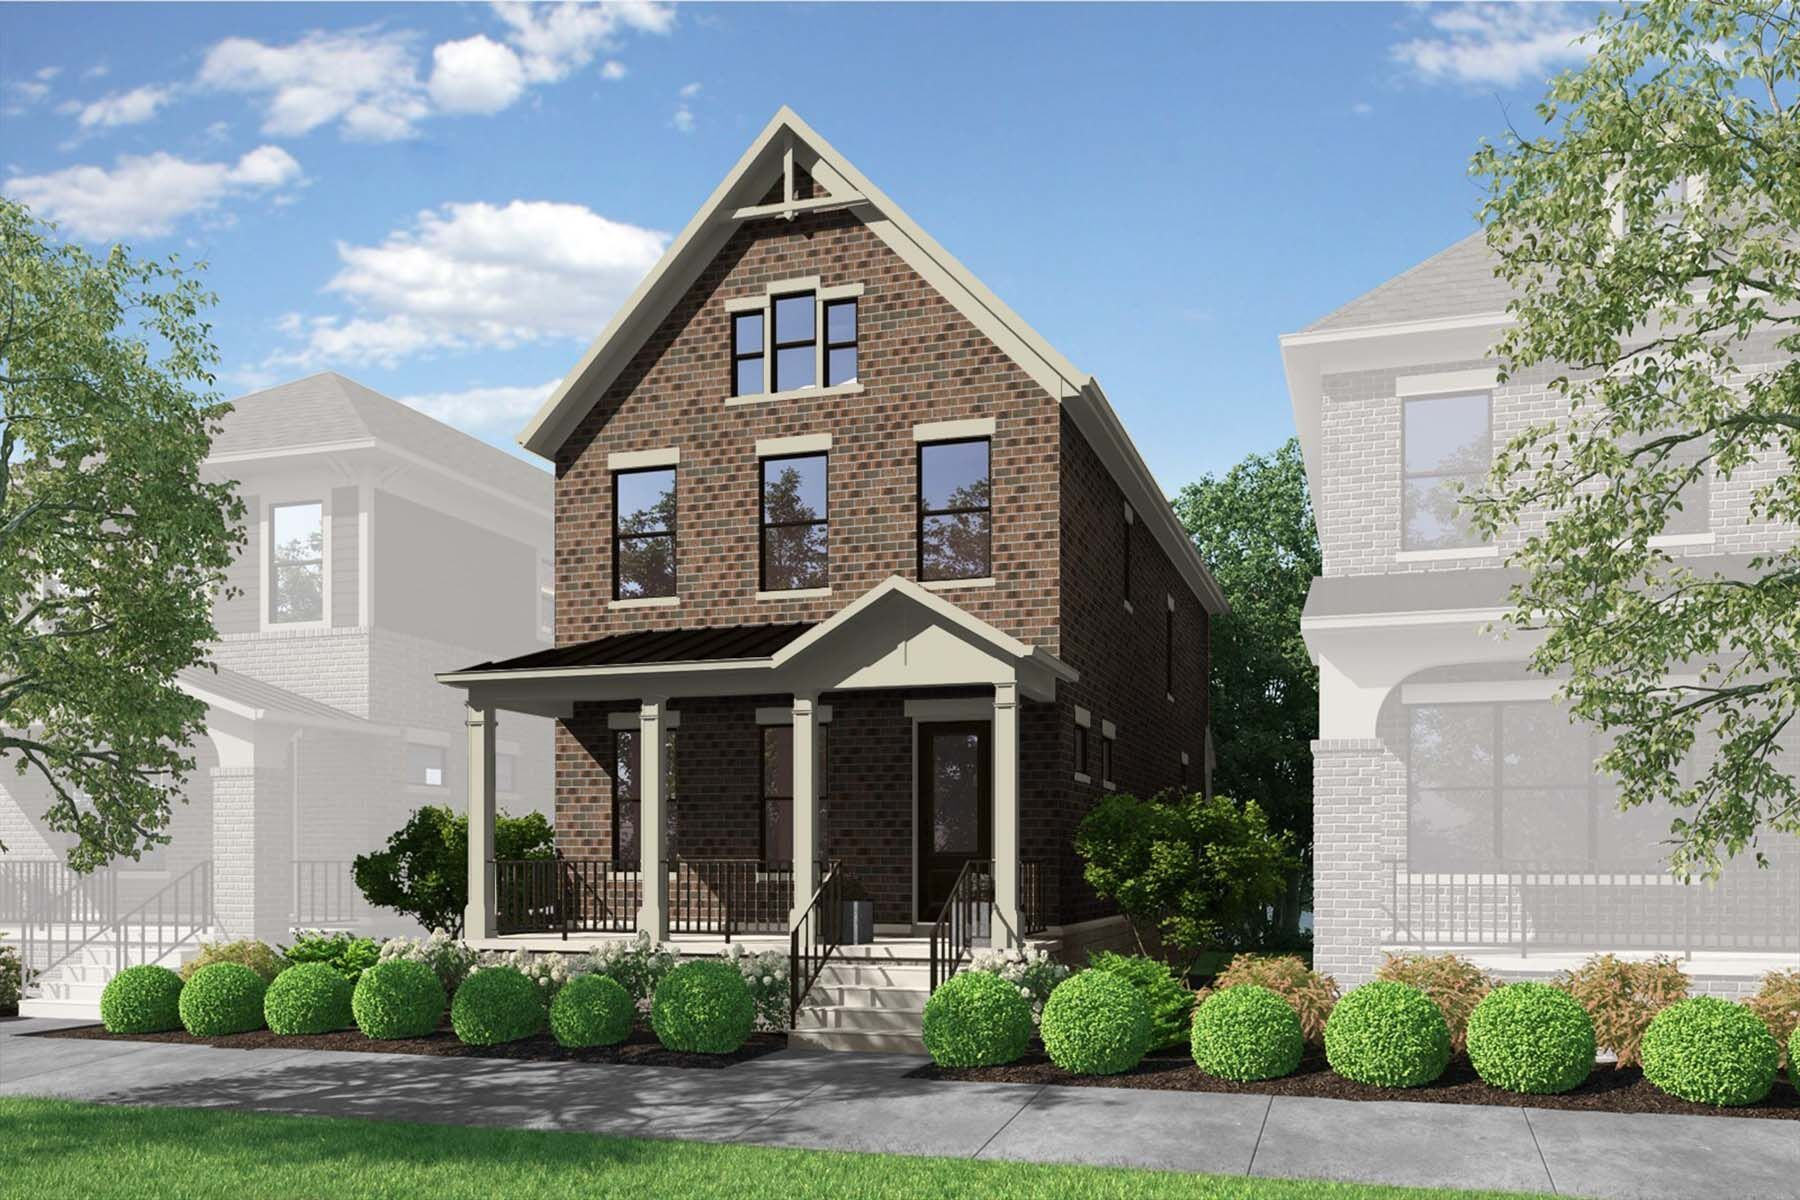 New Construction Homes & Plans in Columbus, OH   32,32 Homes ...